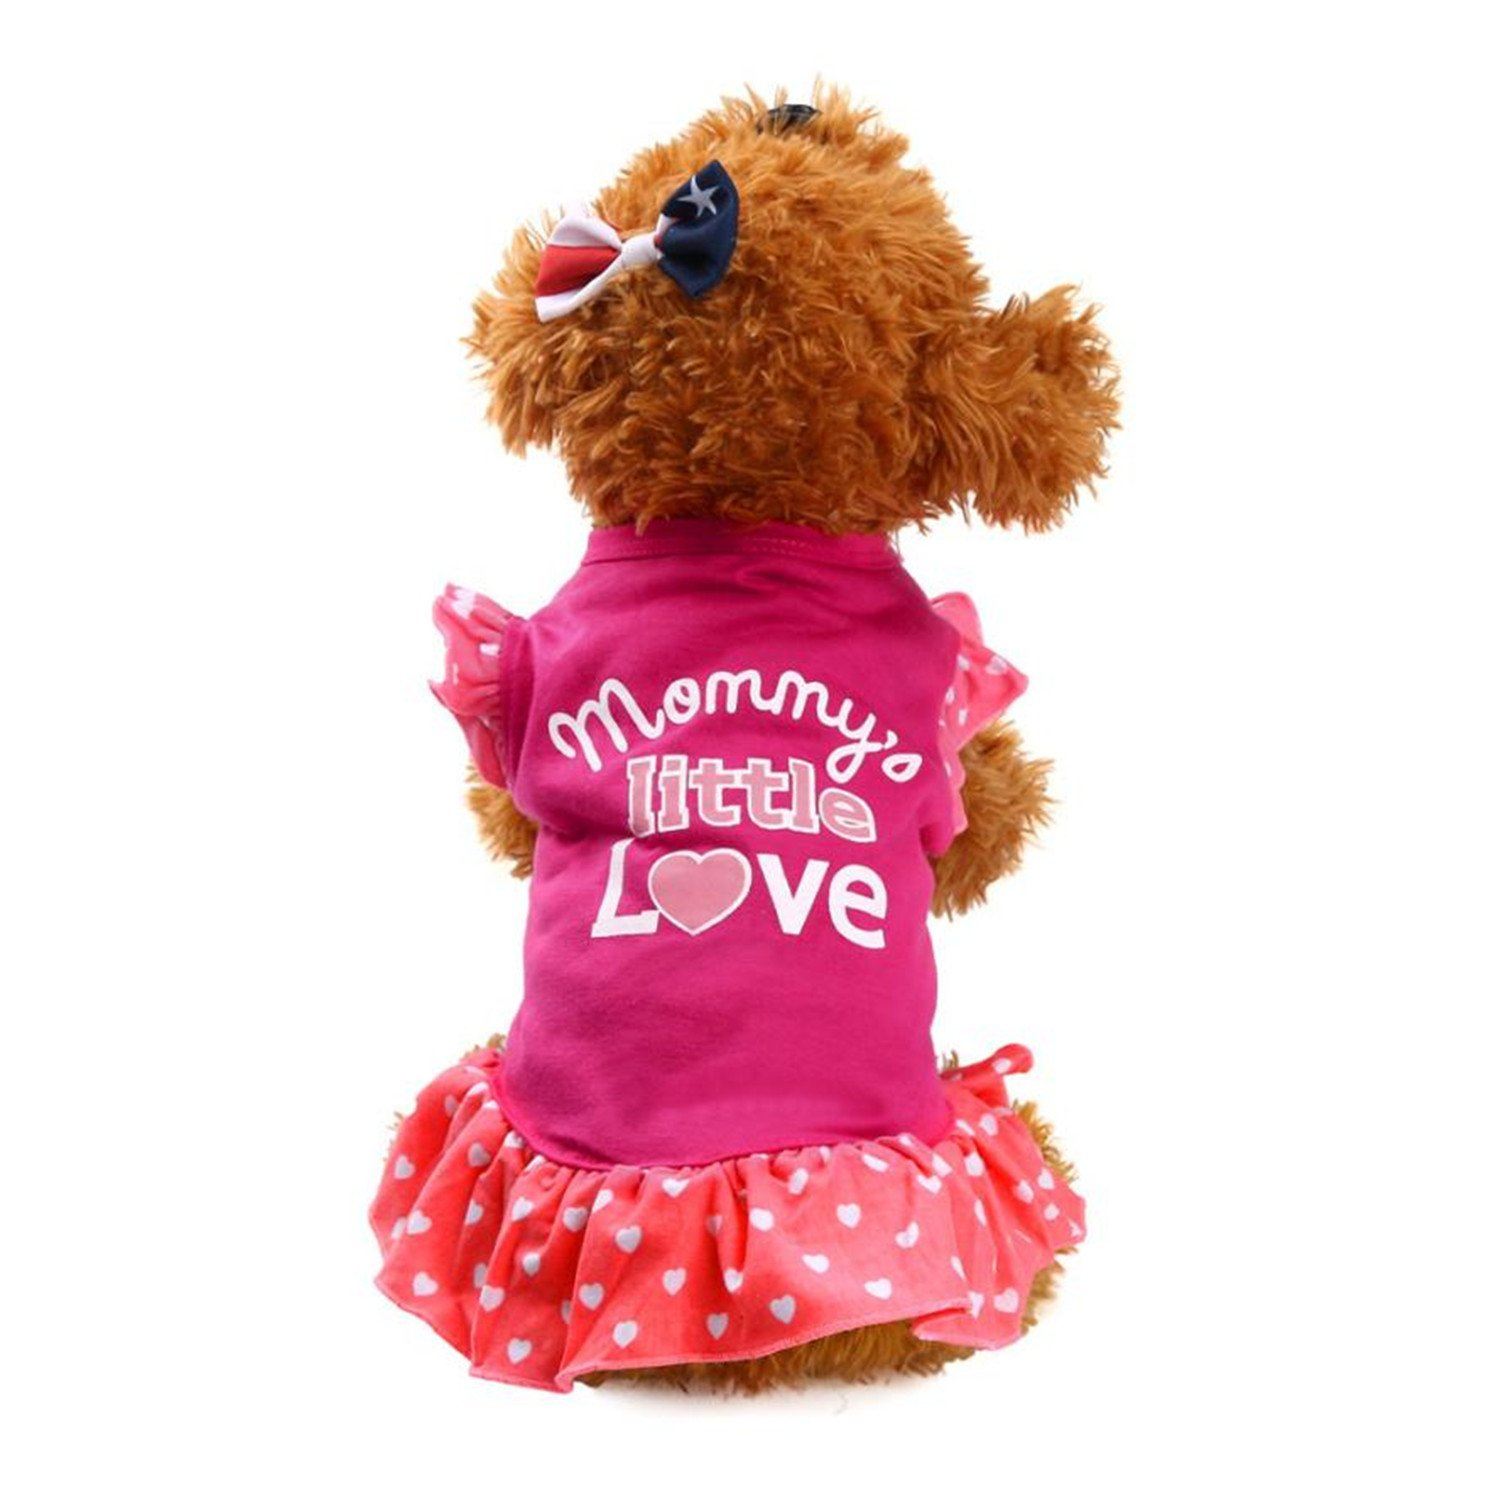 Amazon.com : HuoGuo NEW Summer Puppy Small Pet Cat Pet Dress Apparel Clothes Fly Sleeve Dress Ropa De Verano Para Perros Girls Dog Clothes Dress Hot Pink L ...